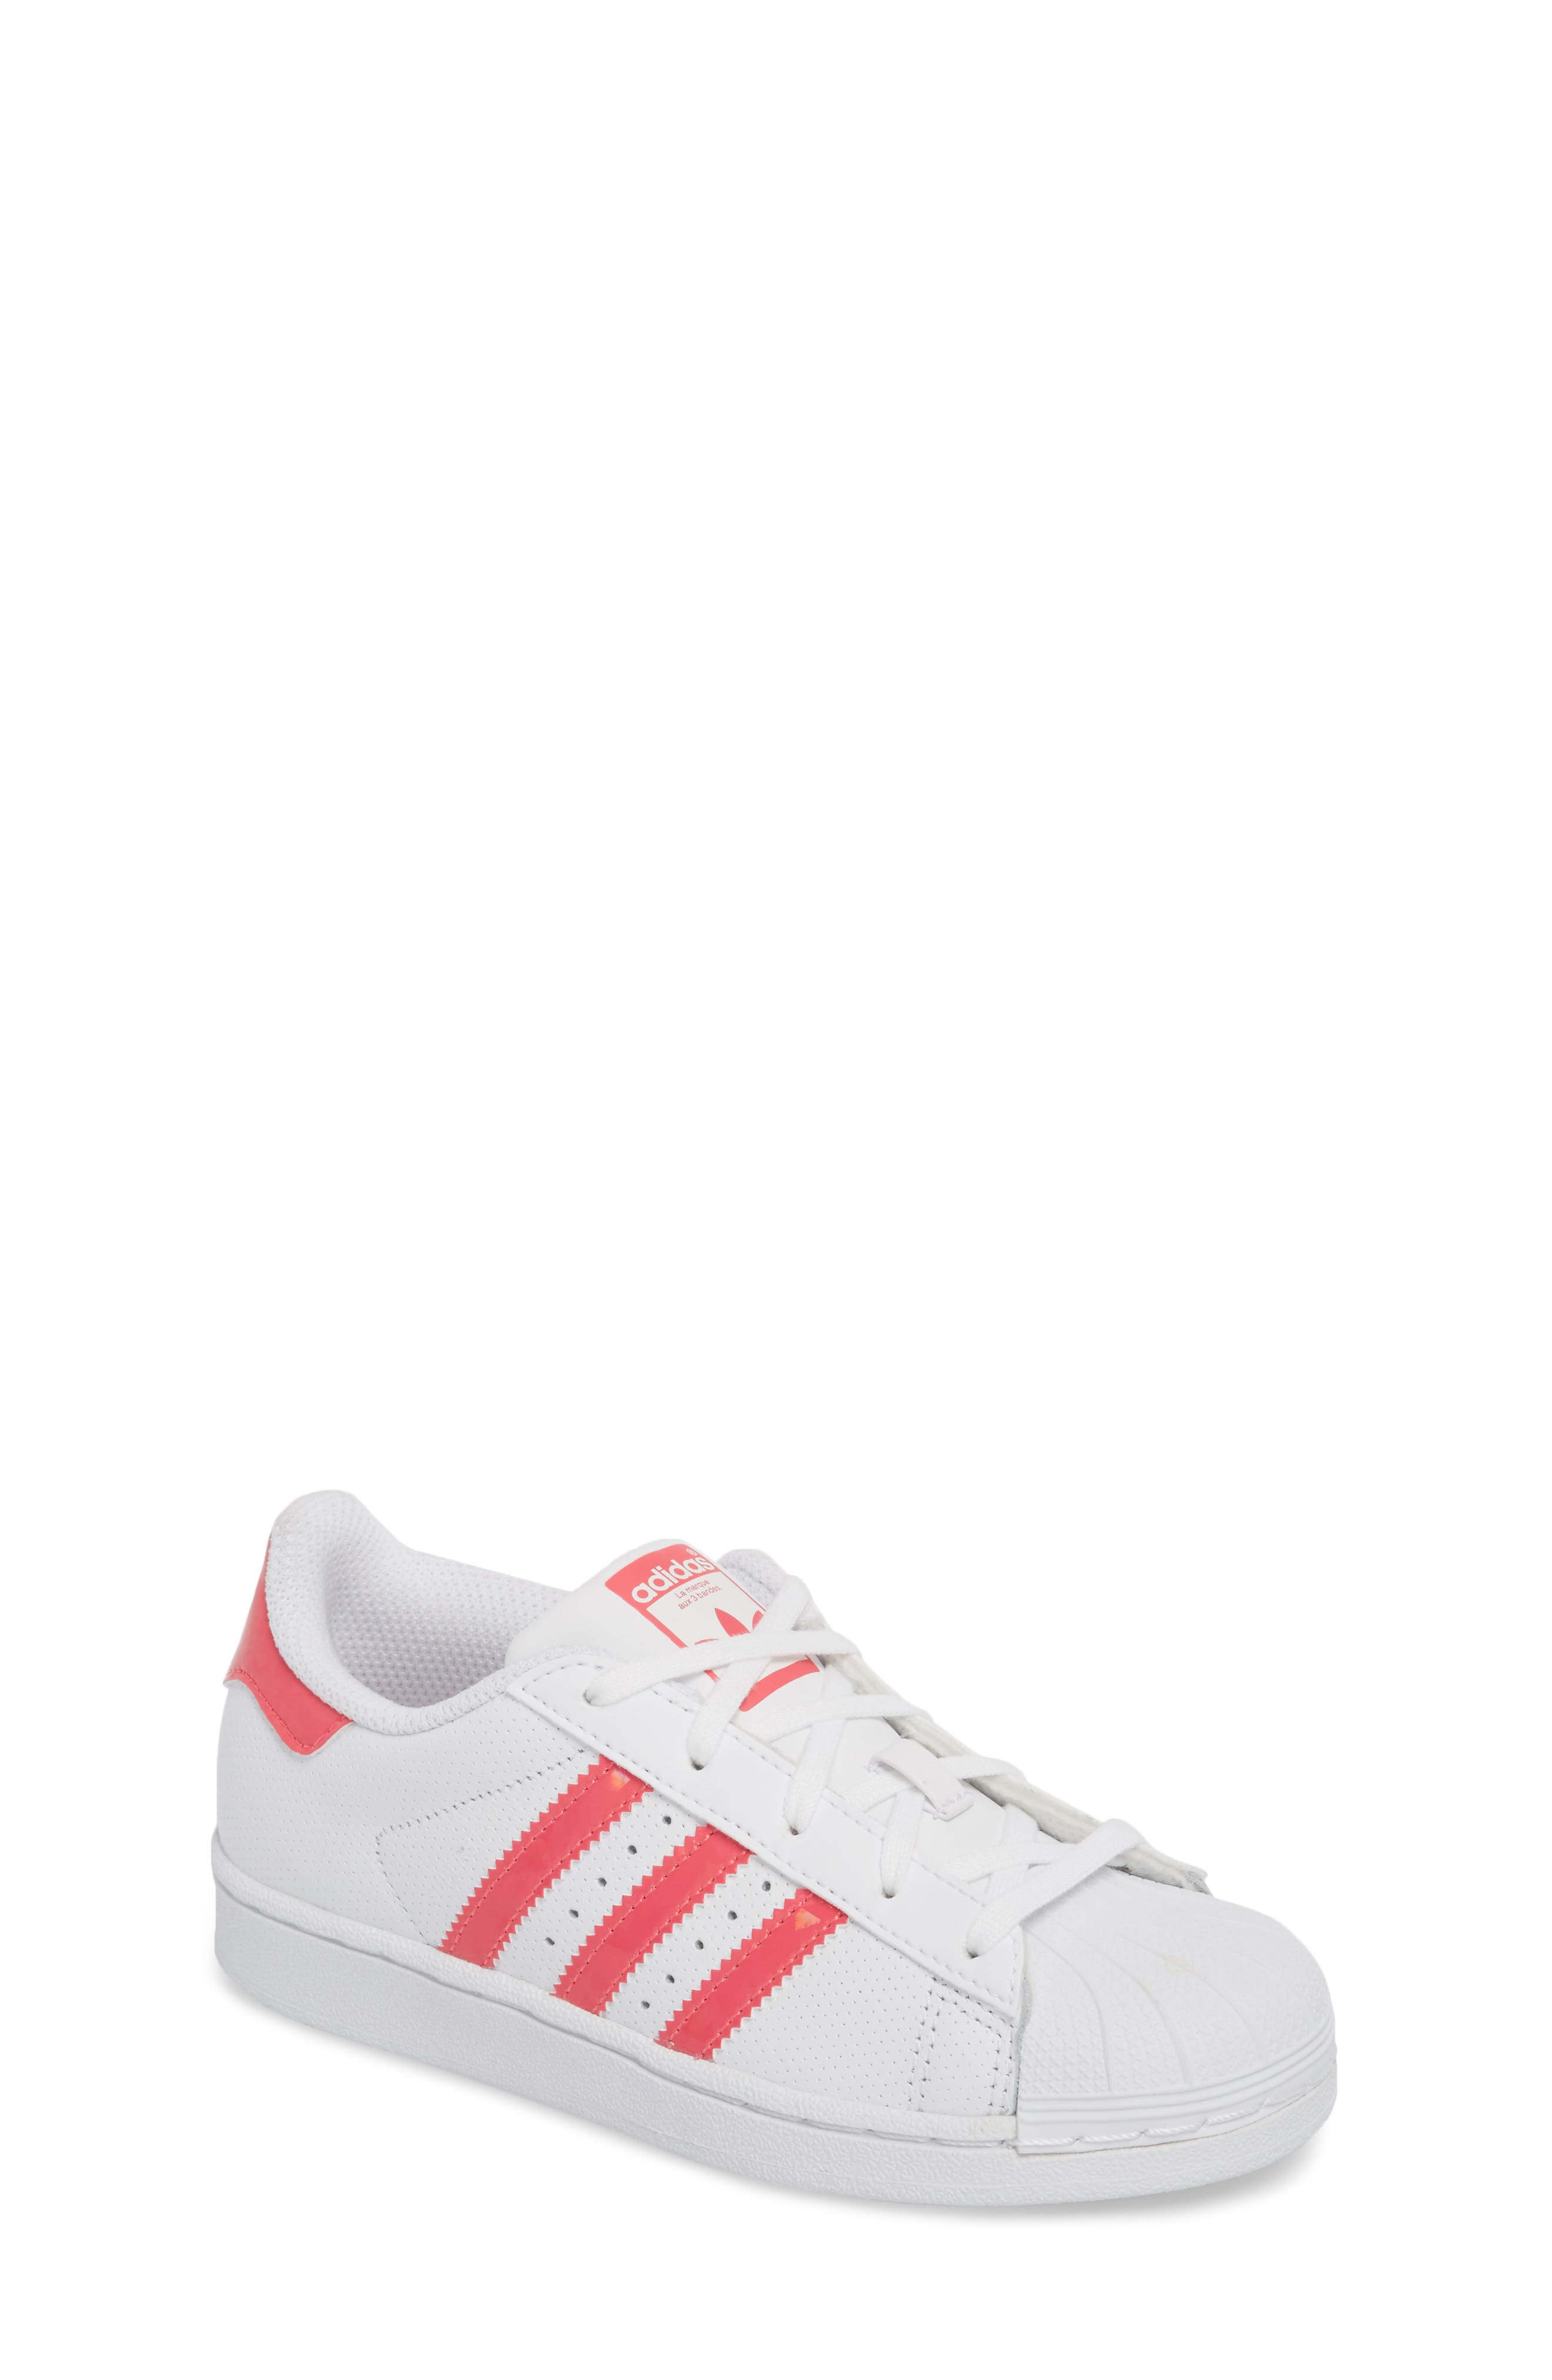 Superstar Perforated Low Top Sneaker,                         Main,                         color, White / Real Pink / White